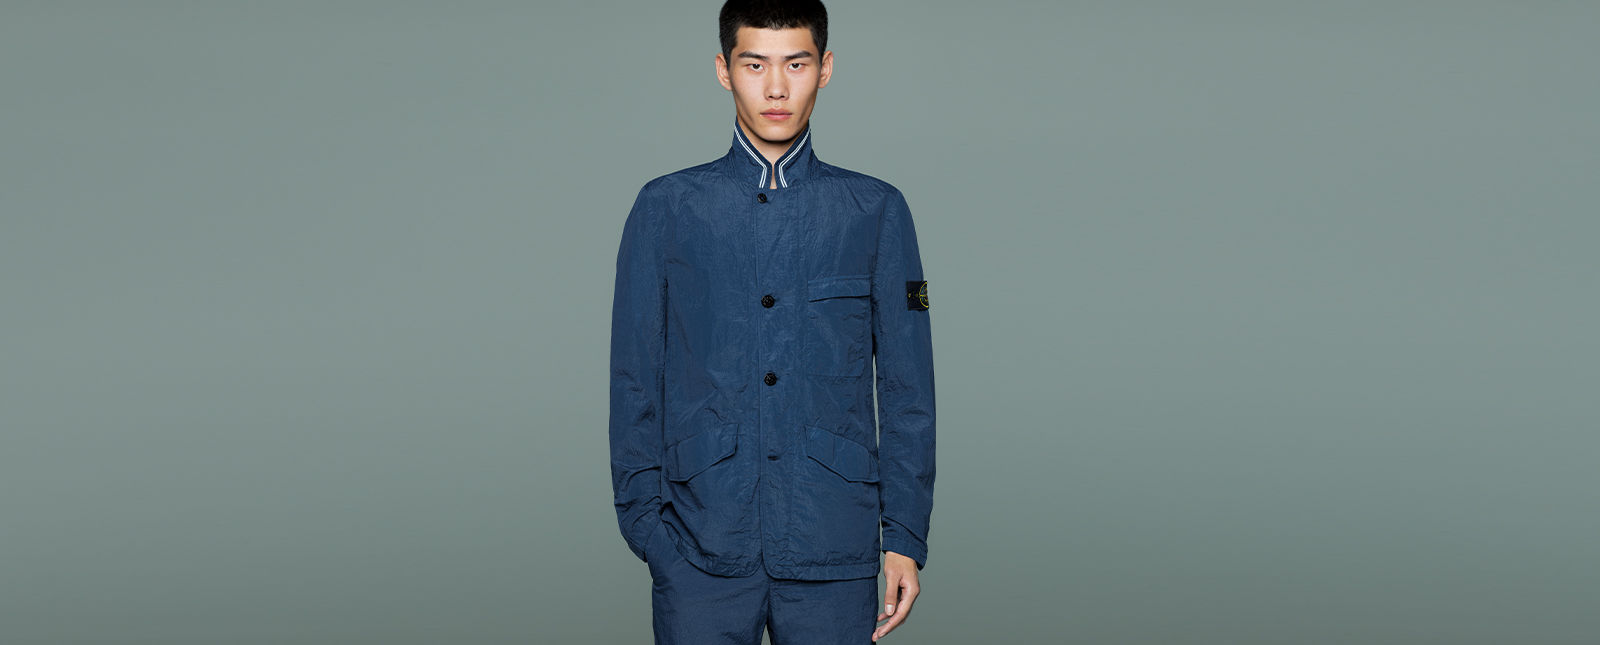 Model wearing dark blue jacket with Mandarin collar with white striped trim, black buttons down the front, chest pocket, side pockets, together with matching pants.